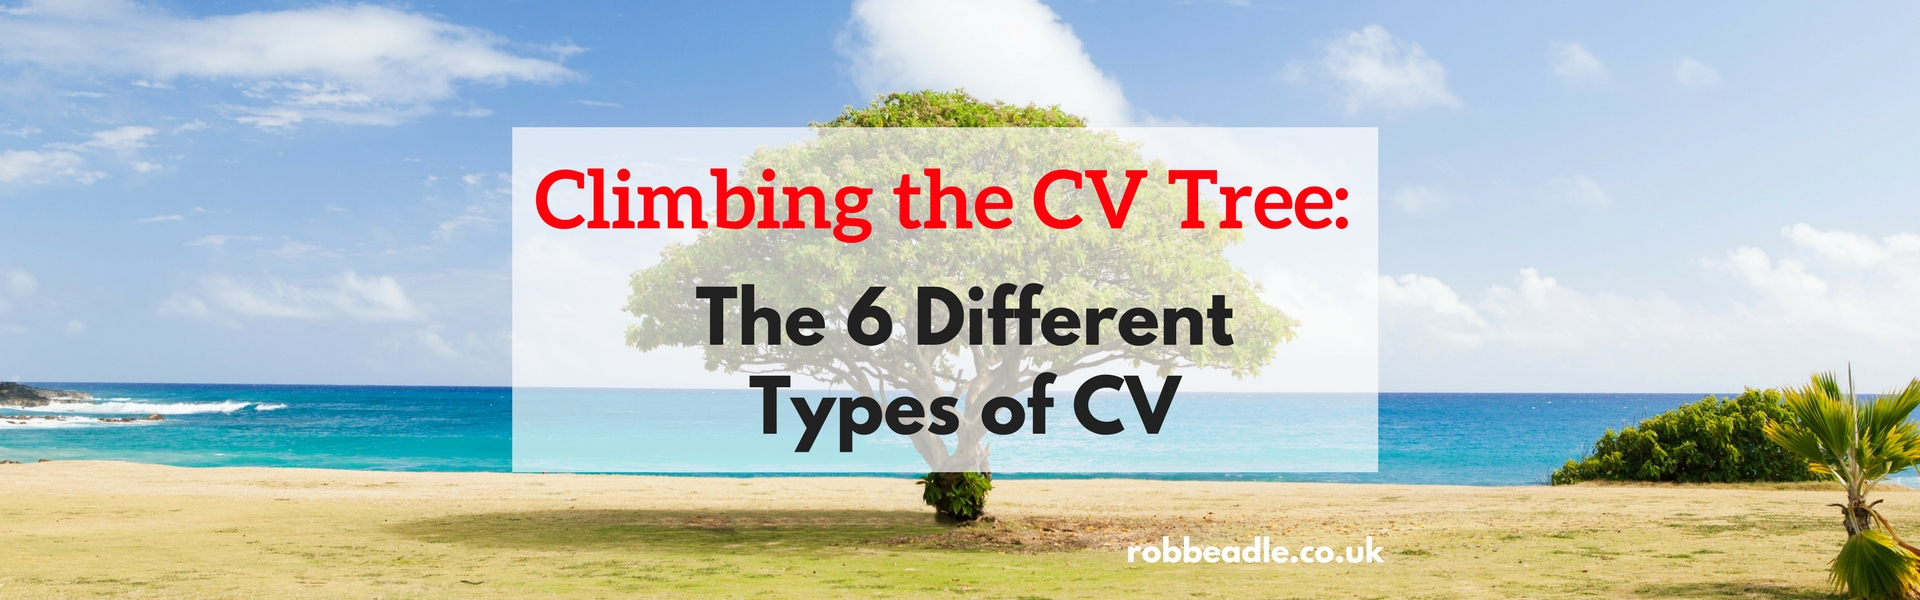 Tree - climbing the cv tree - the 6 different types of cv